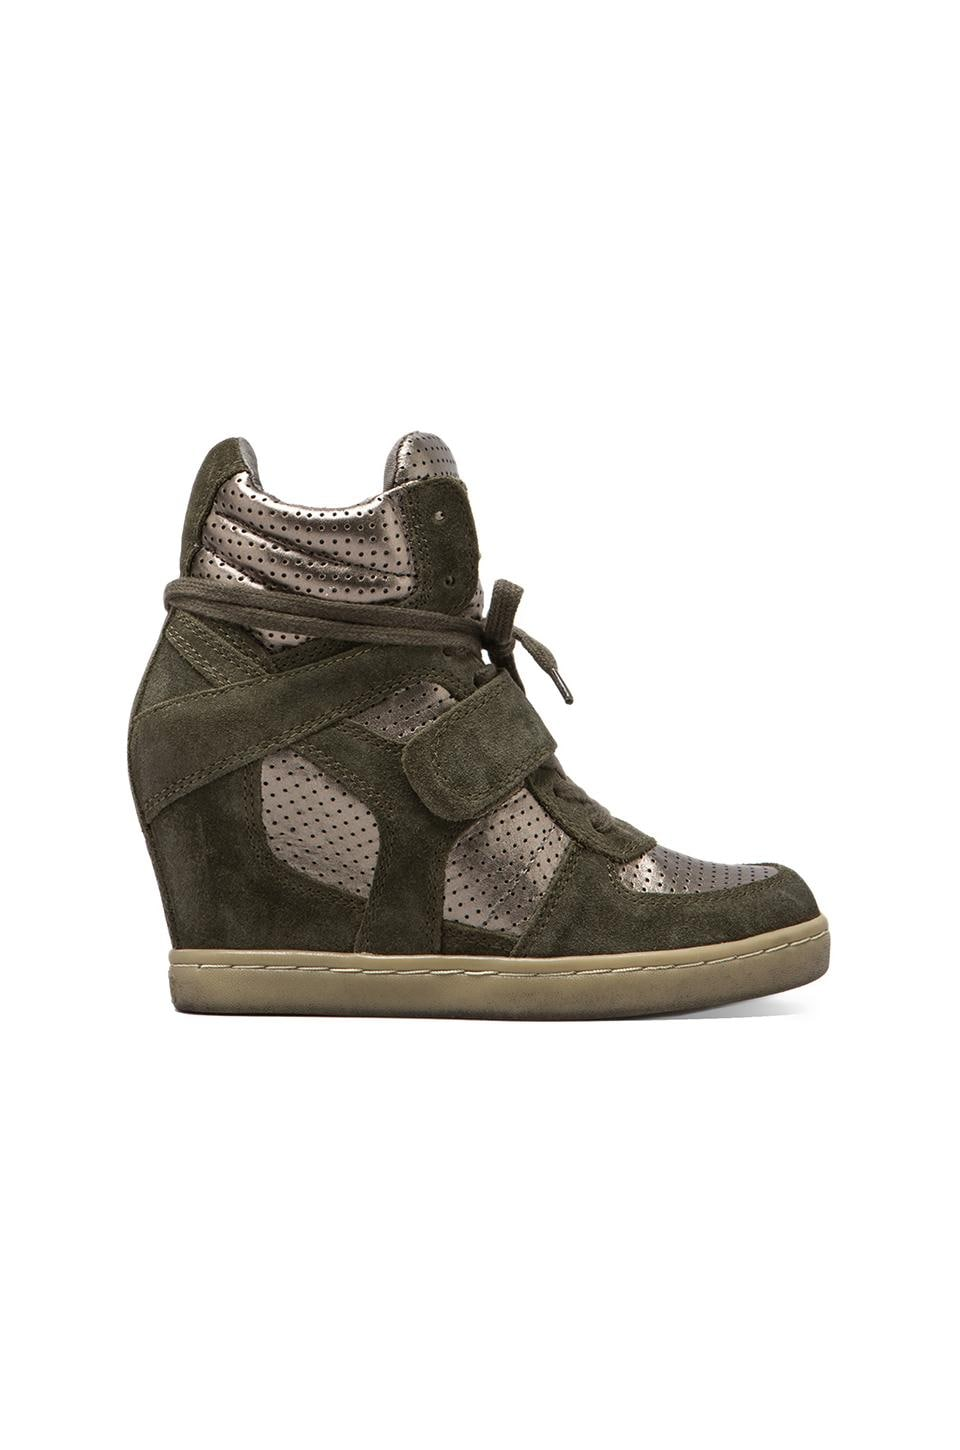 Ash Cool Wedge Sneaker in Military/Piombo